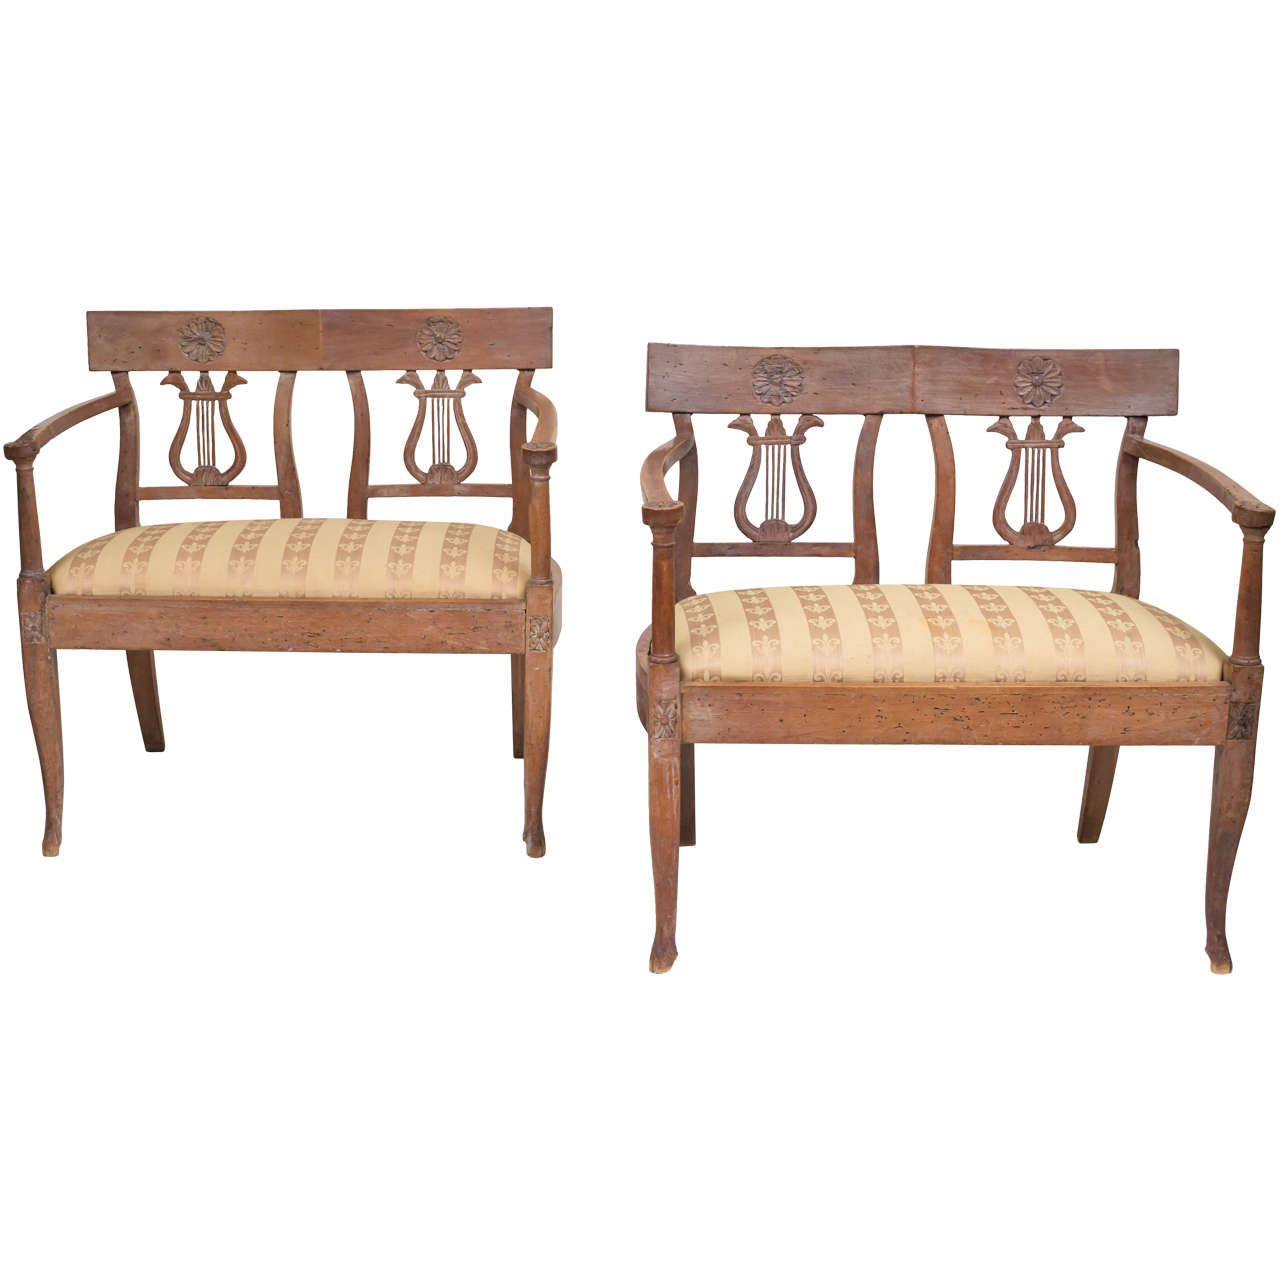 Late 18th Century Italian Neoclassic Walnut Benches, Pair For Sale